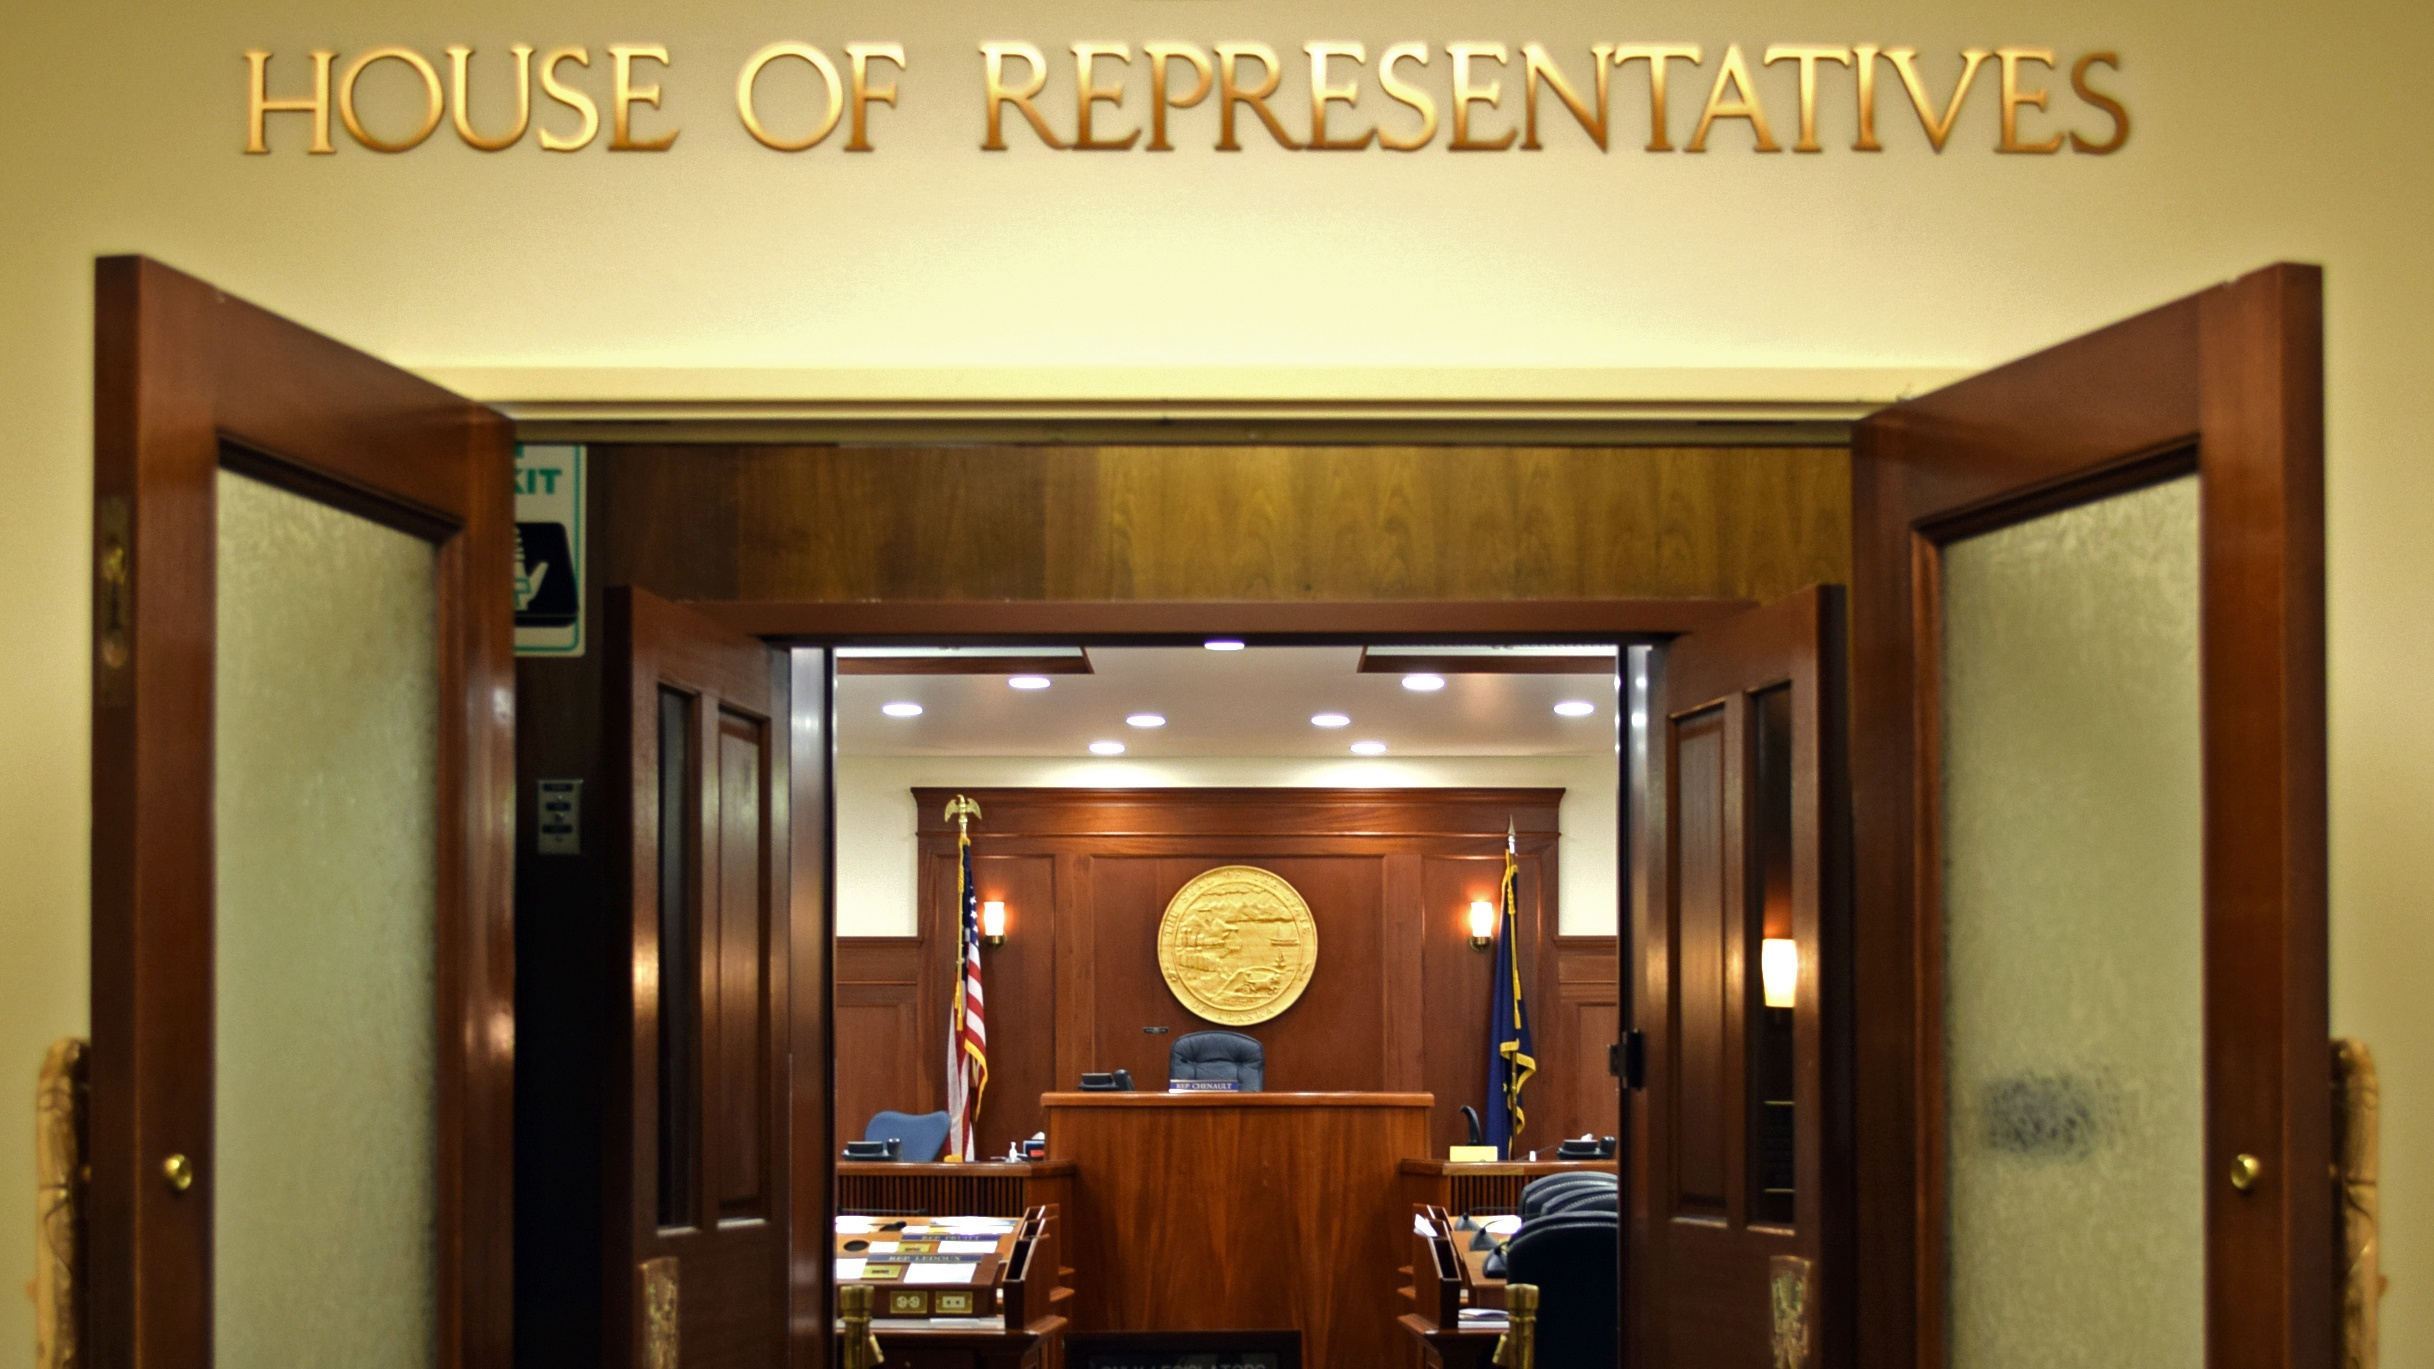 The Alaska House of Representatives entrance in the Capitol in Juneau, Feb. 6, 2015. (Photo by Skip Gray/360 North)